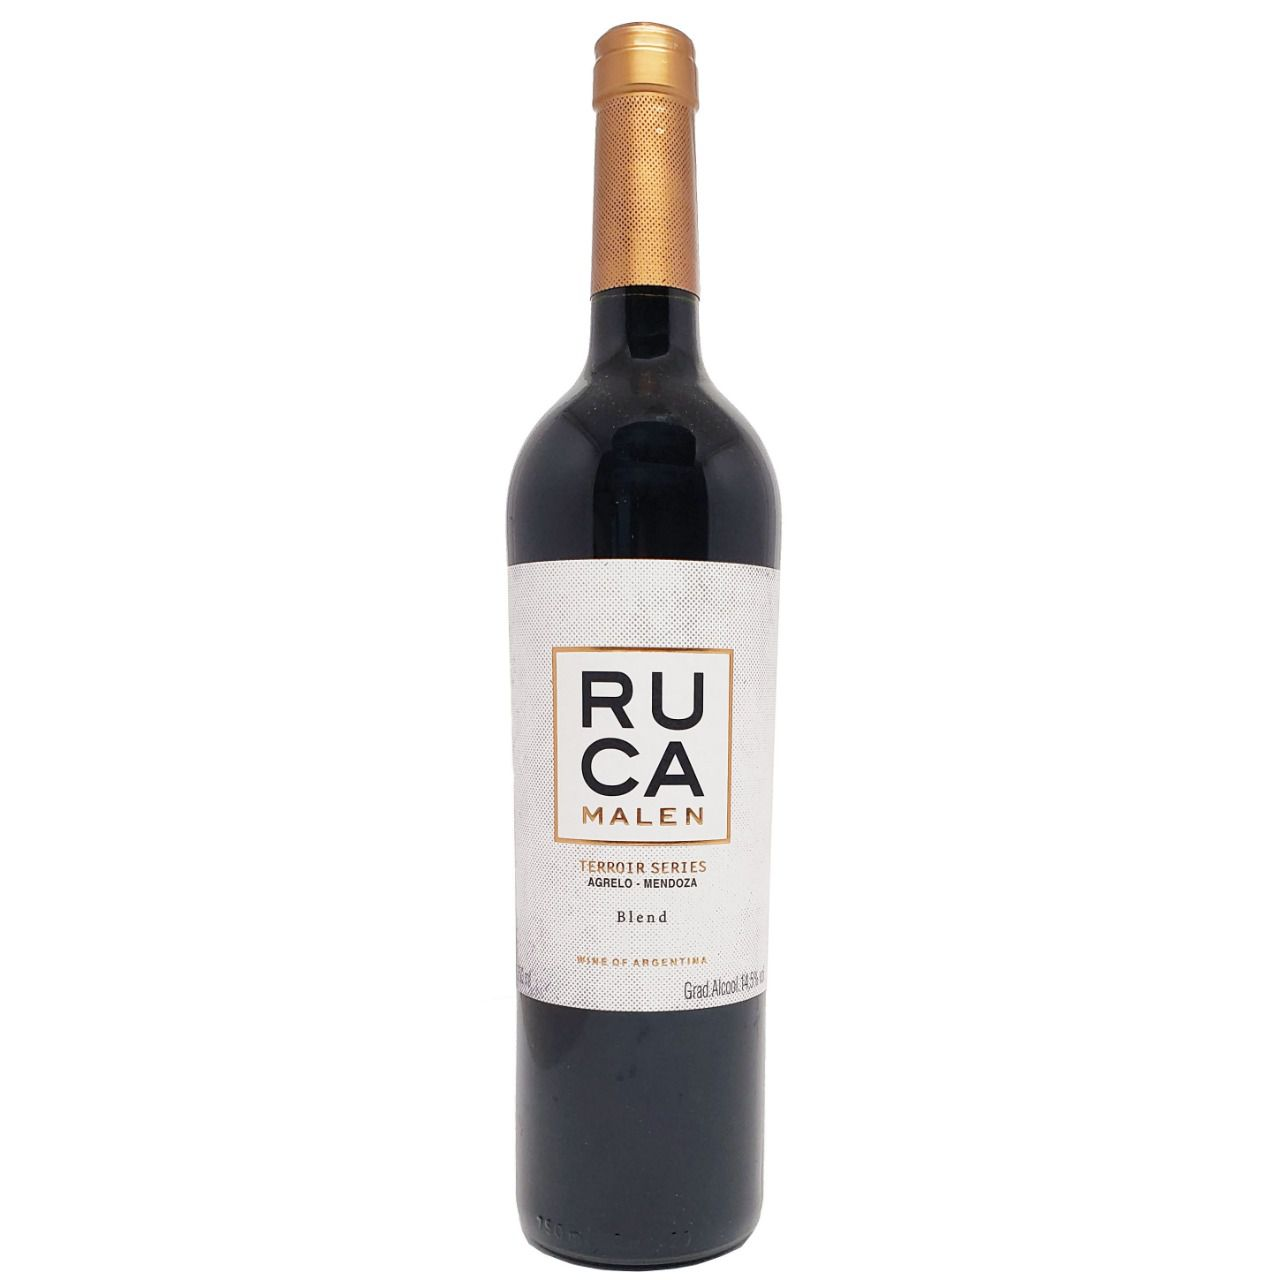 Vinho Tinto Ruca Malen Terroir Series Blend - 750ml -